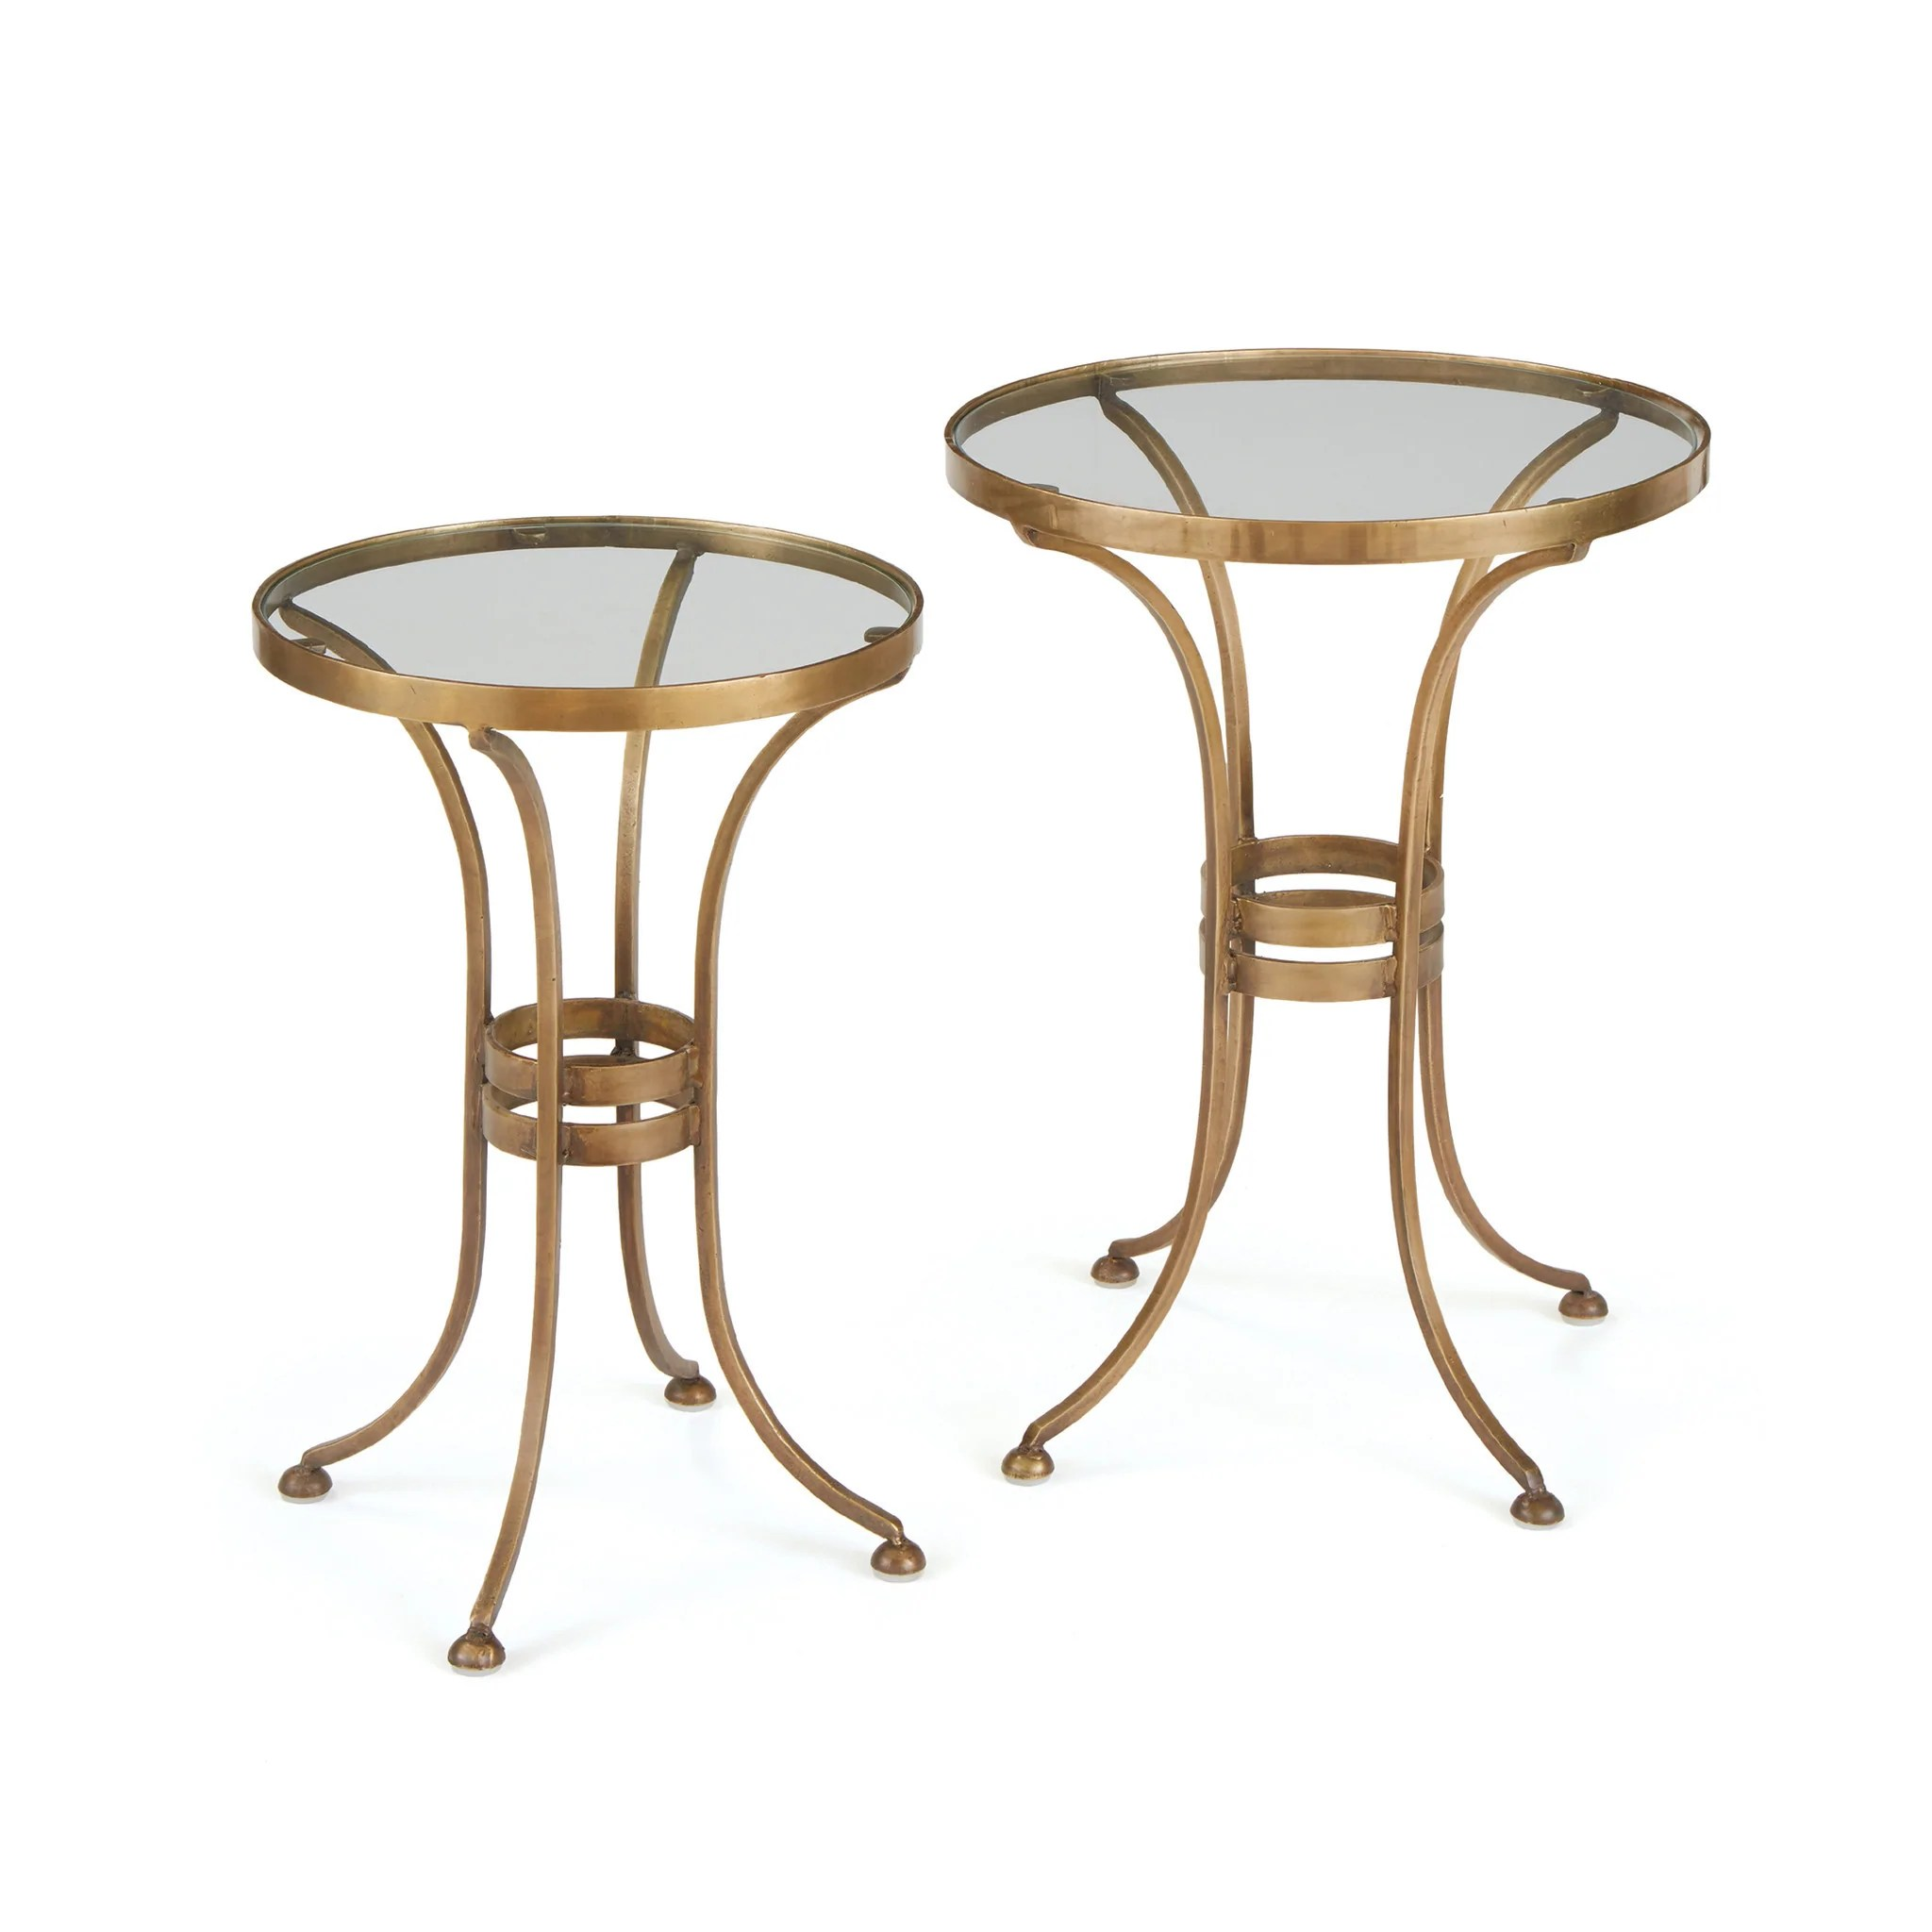 Glass Nesting Tables Gaffney Nesting Tables With Glass Top On Iron Base Set Of 2